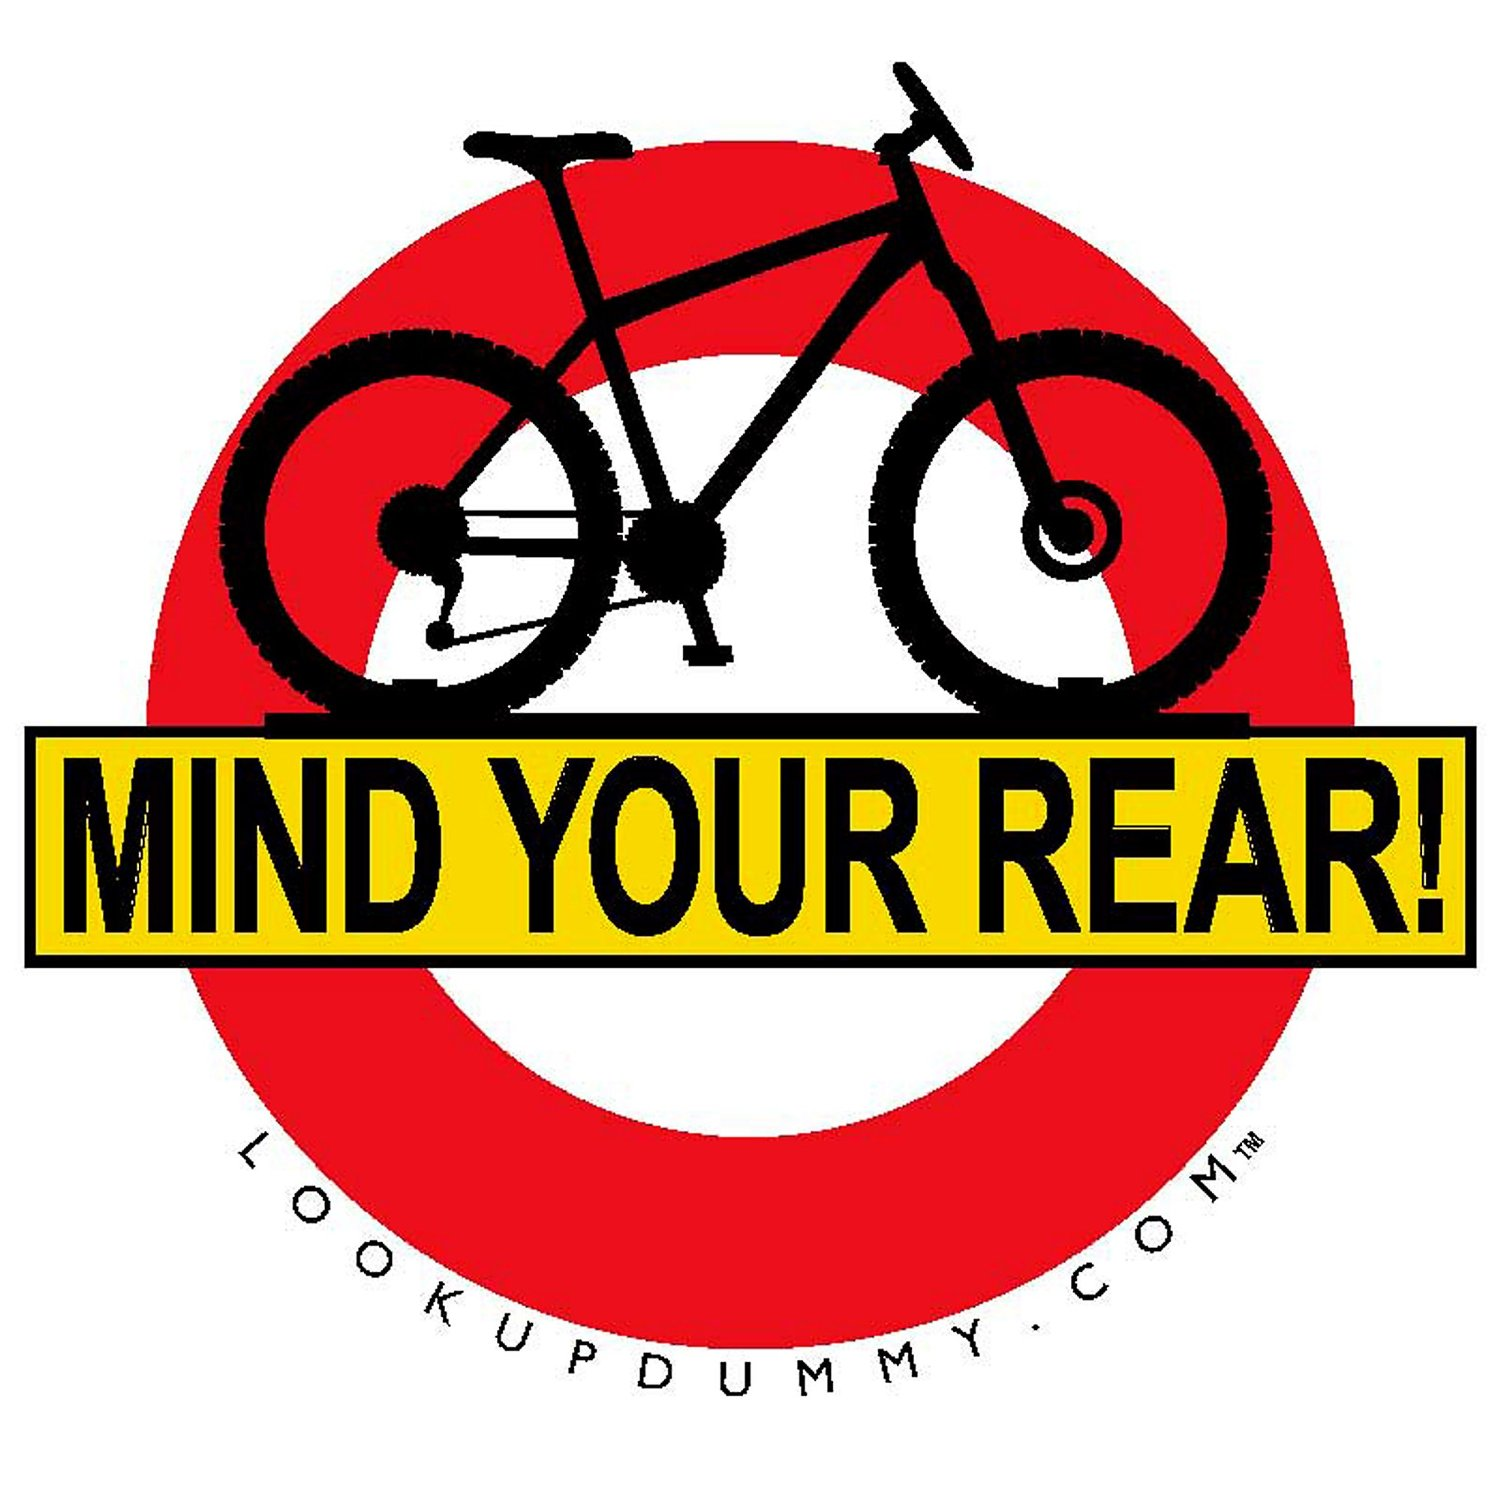 Mind Your Rear - Bike Rear Rack Windshield Reminder and Warning System - A Non-Adhesive Removable and Reusable Vinyl Window Cling - Save Your Bike Car and Rack from Damage!